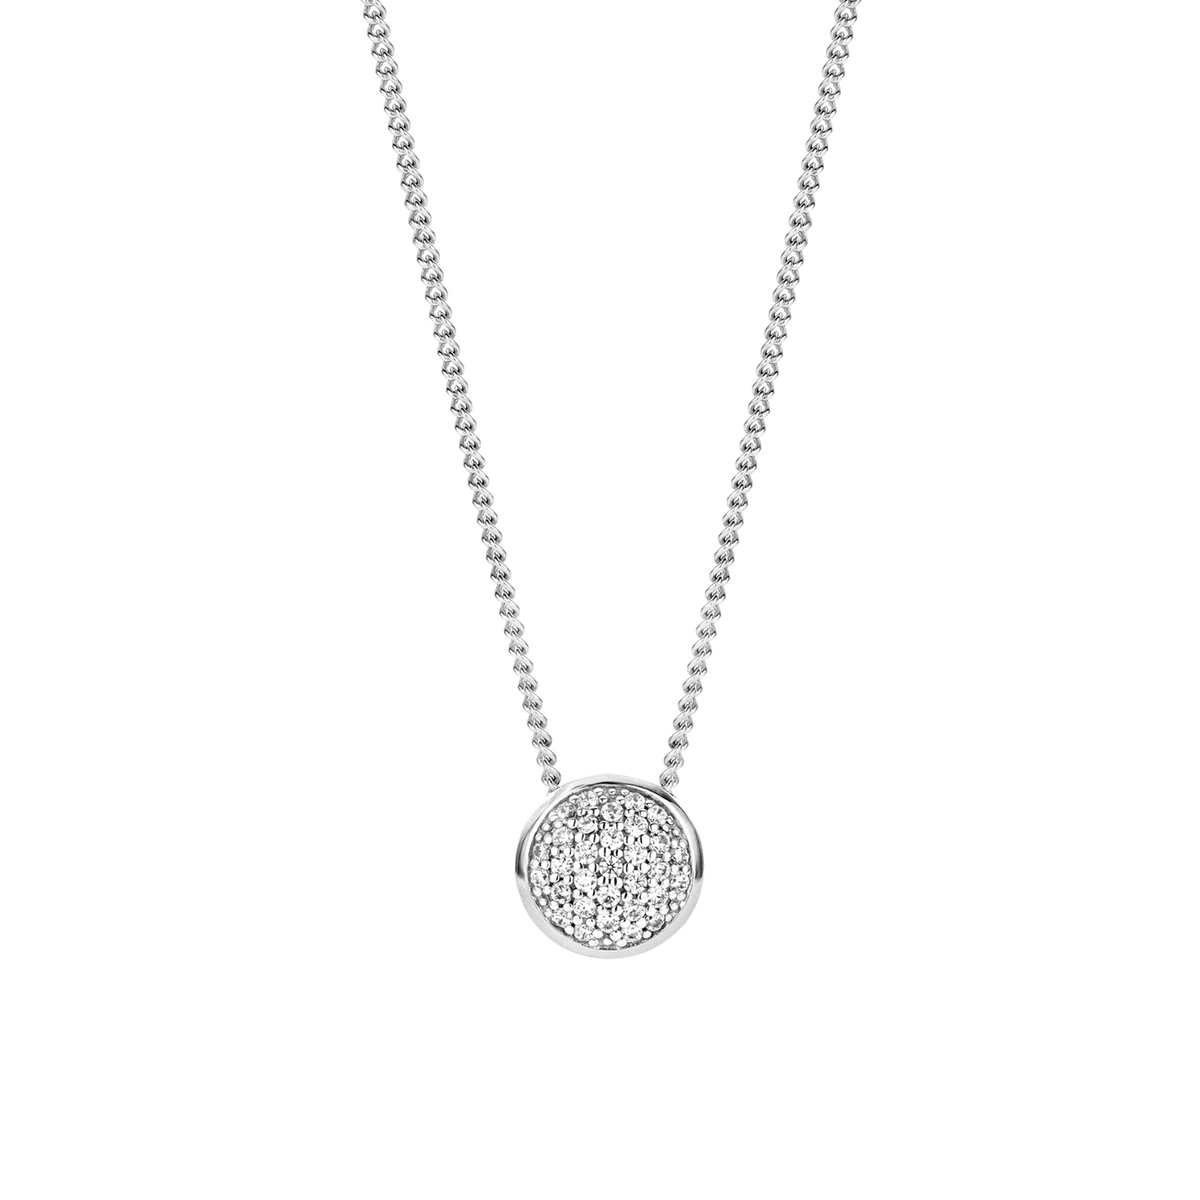 TI SENTO - Milano Necklace 3812ZI